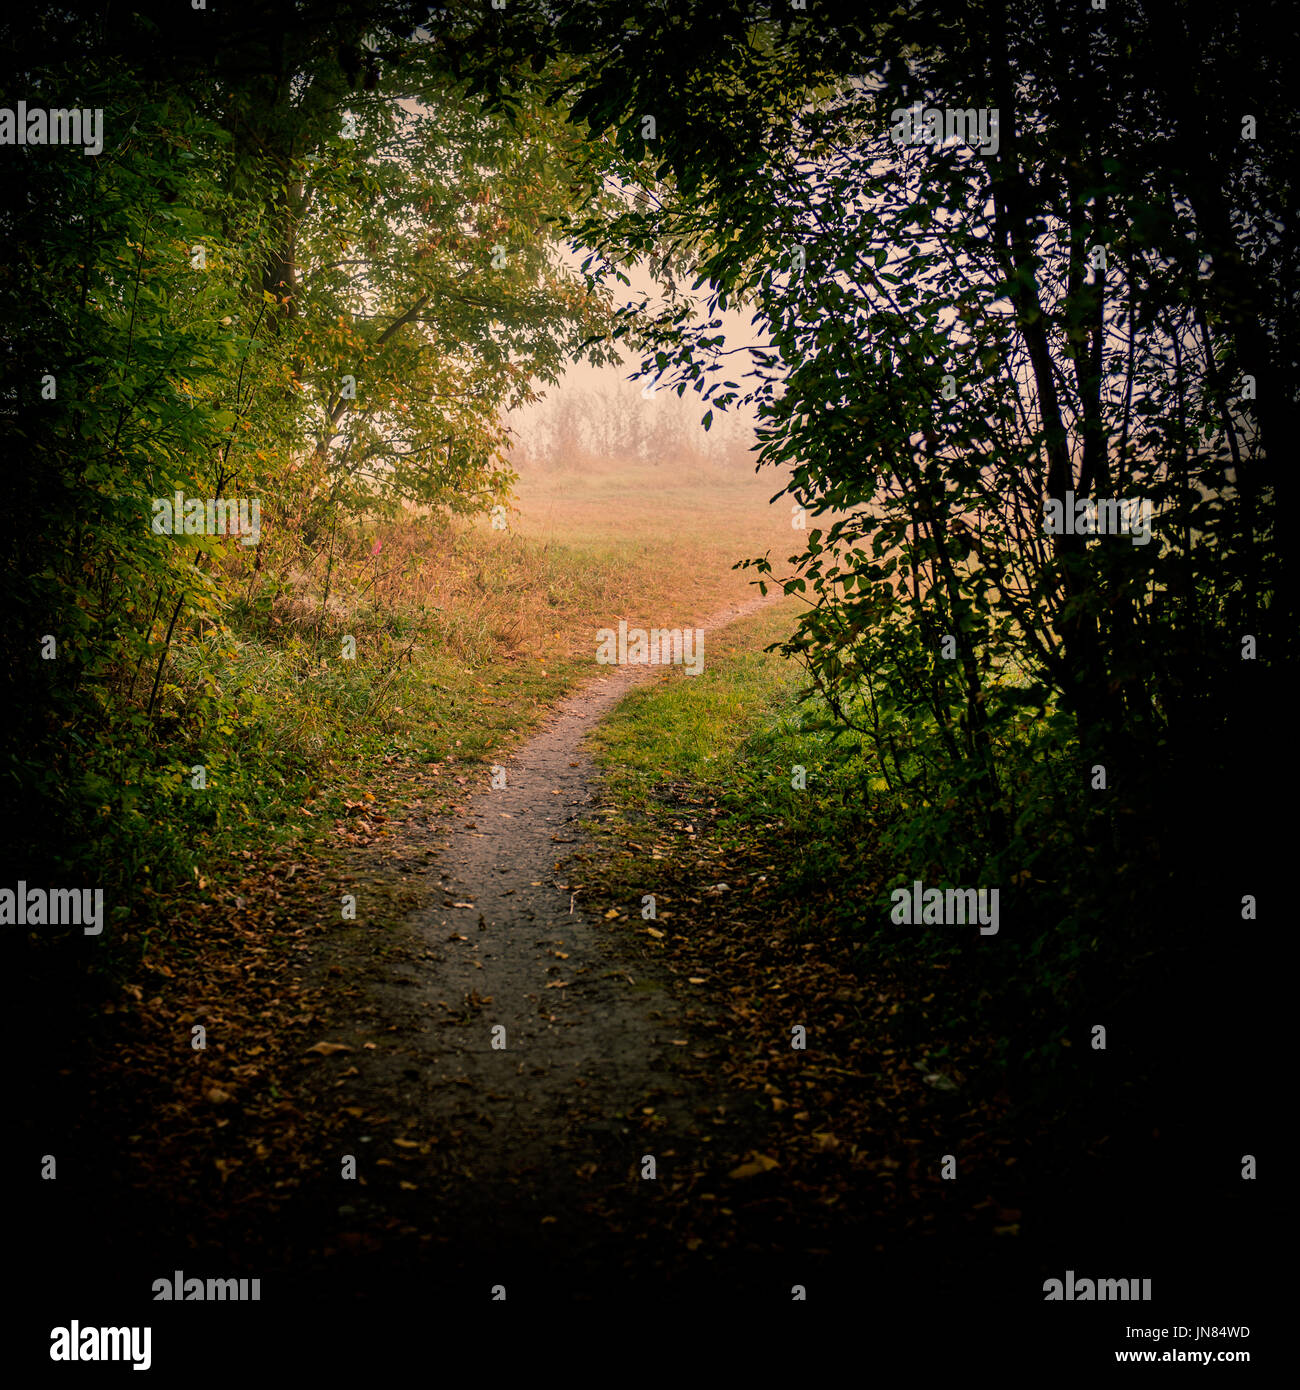 Dirt trail in the misty autumn forest - Stock Image